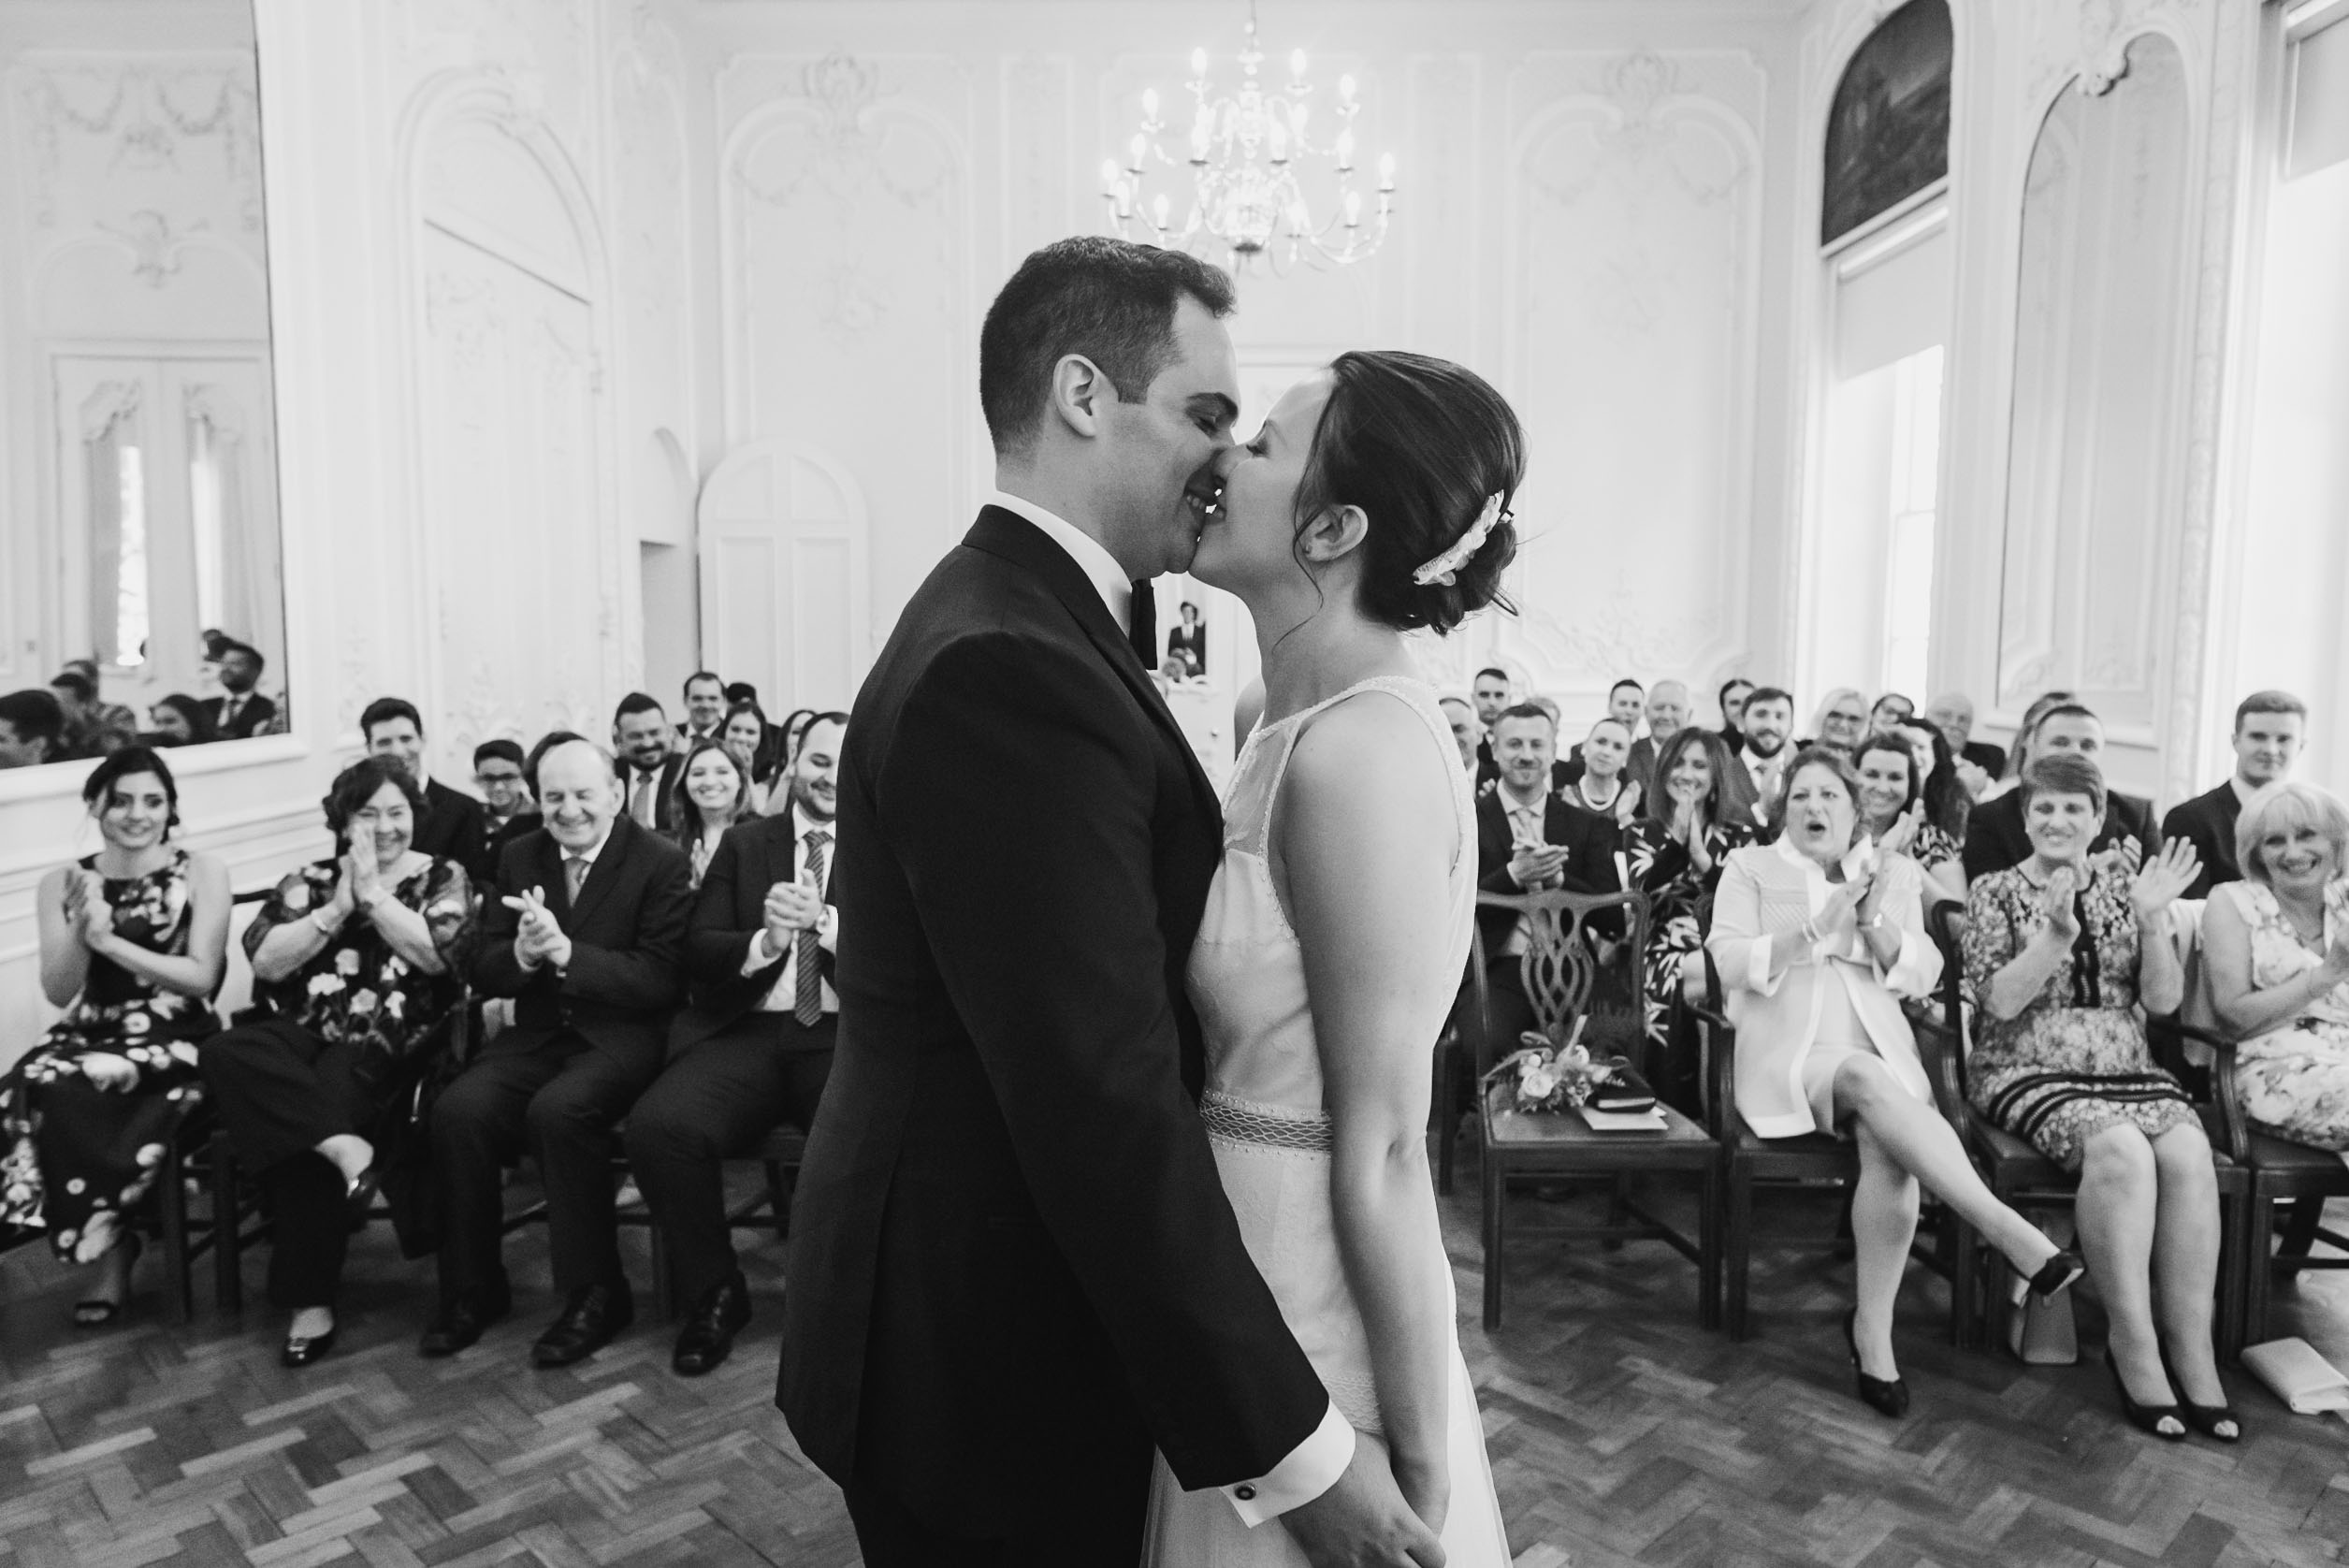 carine bea photography, fisrt kiss wedding ceremony at carlton house terrace london